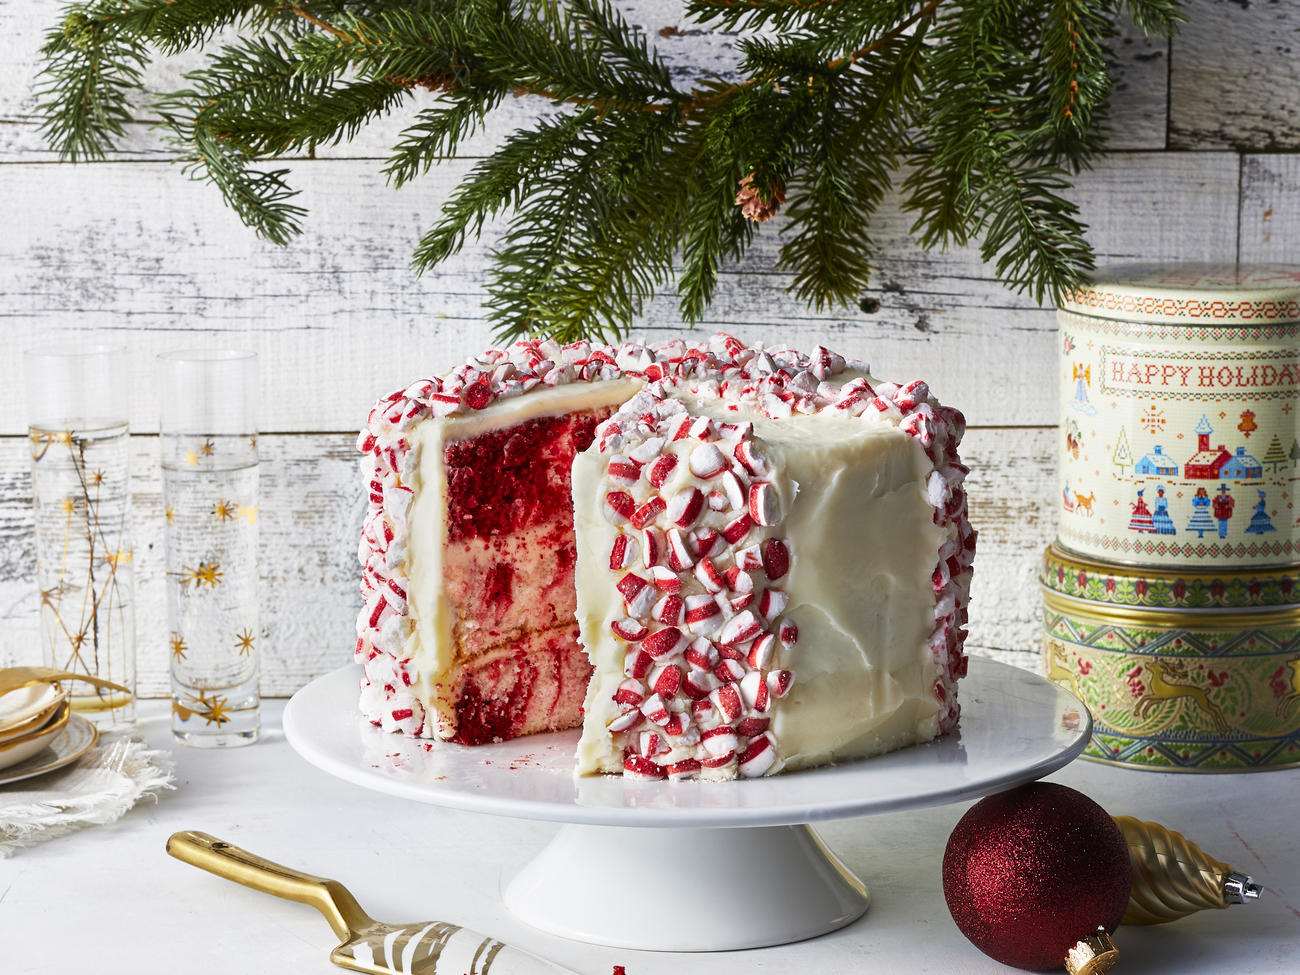 sl-Red Velvet Peppermint Cake Image Update